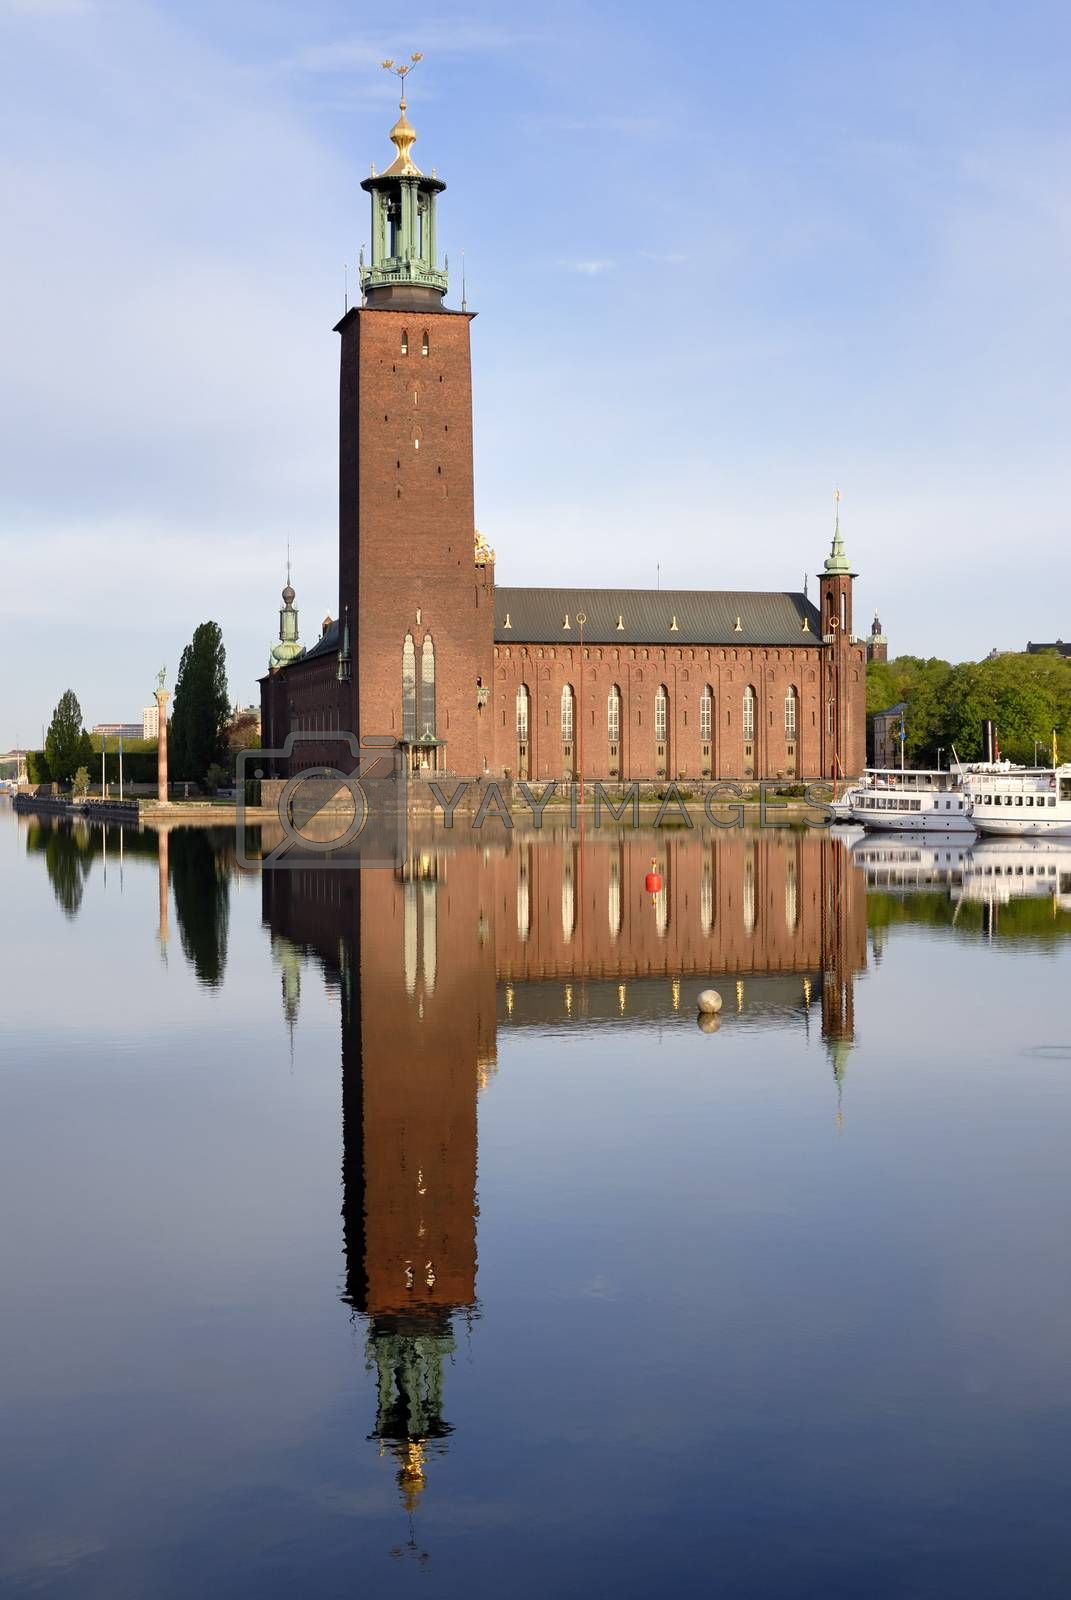 Stockholm City Hall with reflection on water.